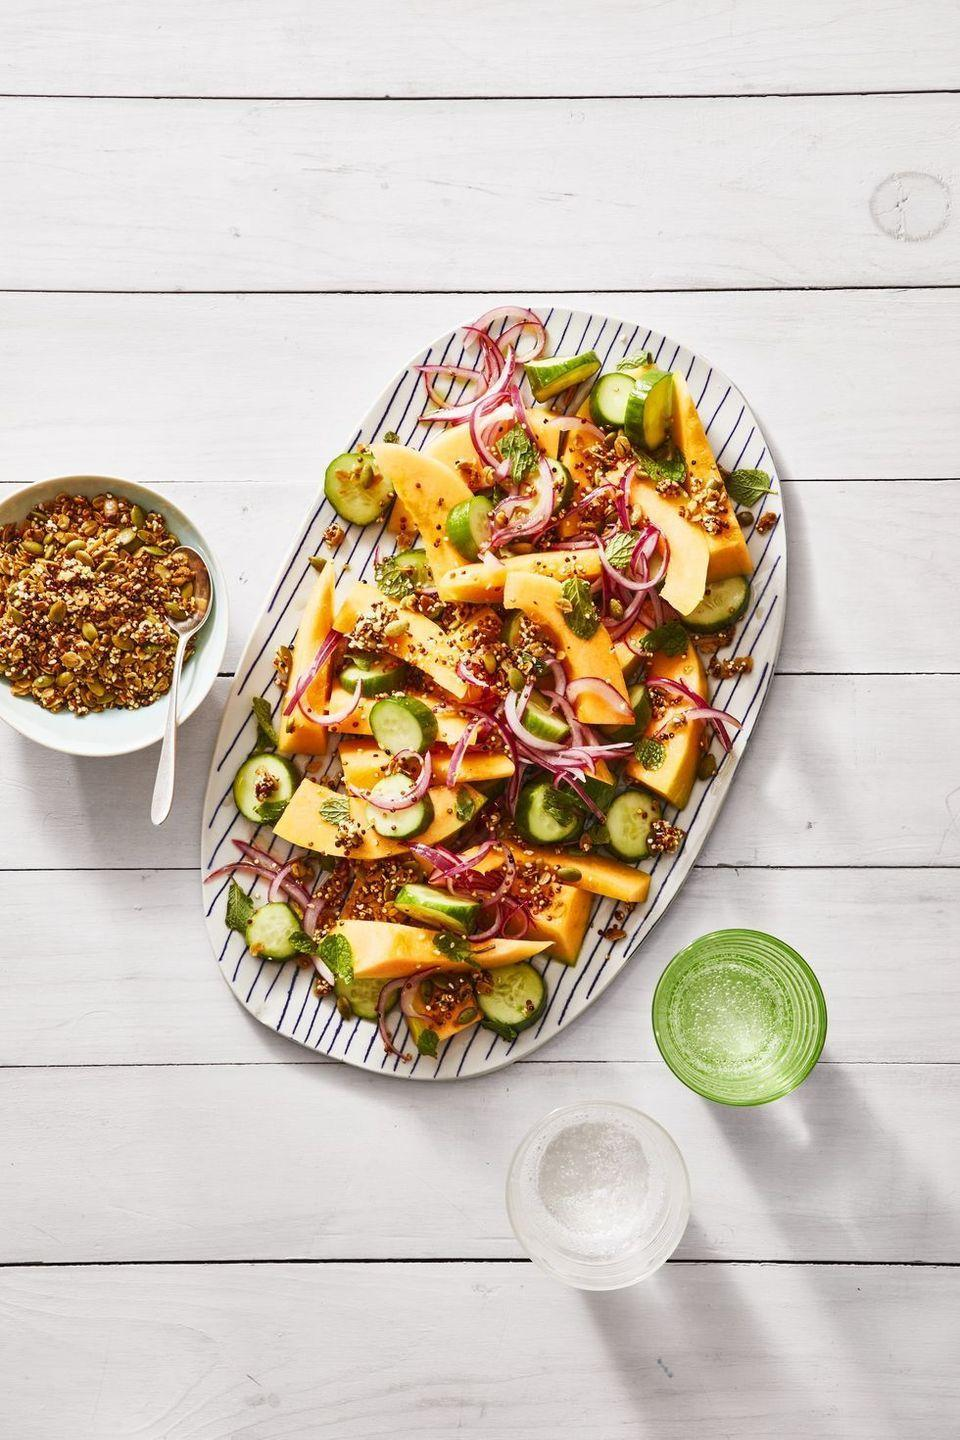 """<p>Skip basic fruit salad. This cool and crunchy side is packed with fresh flavor.</p><p><em><a href=""""https://www.goodhousekeeping.com/food-recipes/a27530675/cucumber-and-cantaloupe-salad-with-savory-quinoa-granola-recipe/"""" rel=""""nofollow noopener"""" target=""""_blank"""" data-ylk=""""slk:Get the recipe for Cucumber and Cantaloupe Salad with Savory Quinoa Granola »"""" class=""""link rapid-noclick-resp"""">Get the recipe for Cucumber and Cantaloupe Salad with Savory Quinoa Granola »</a></em></p>"""